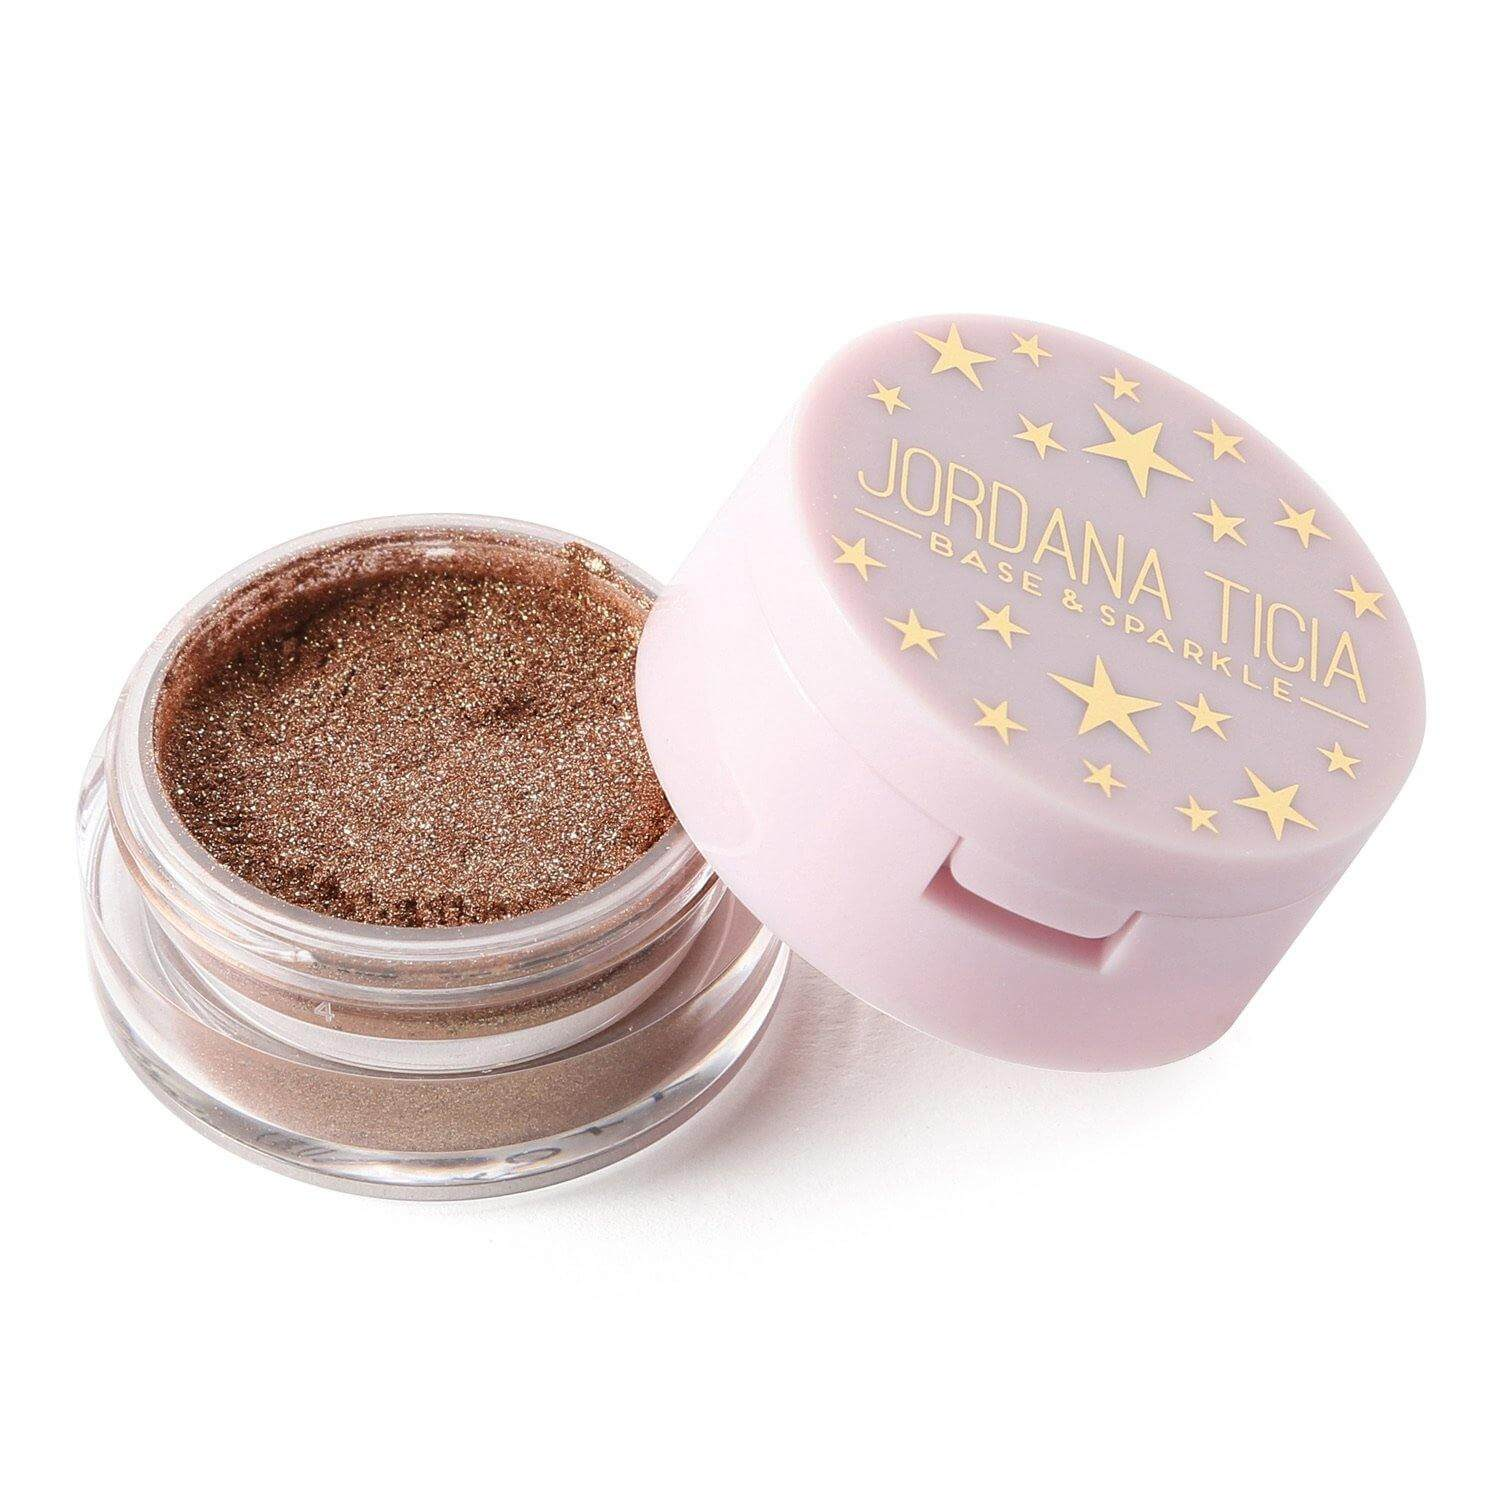 JORDANA TICIA-Jordana Ticia Base & Sparkle - Foxy-Beauty Gold